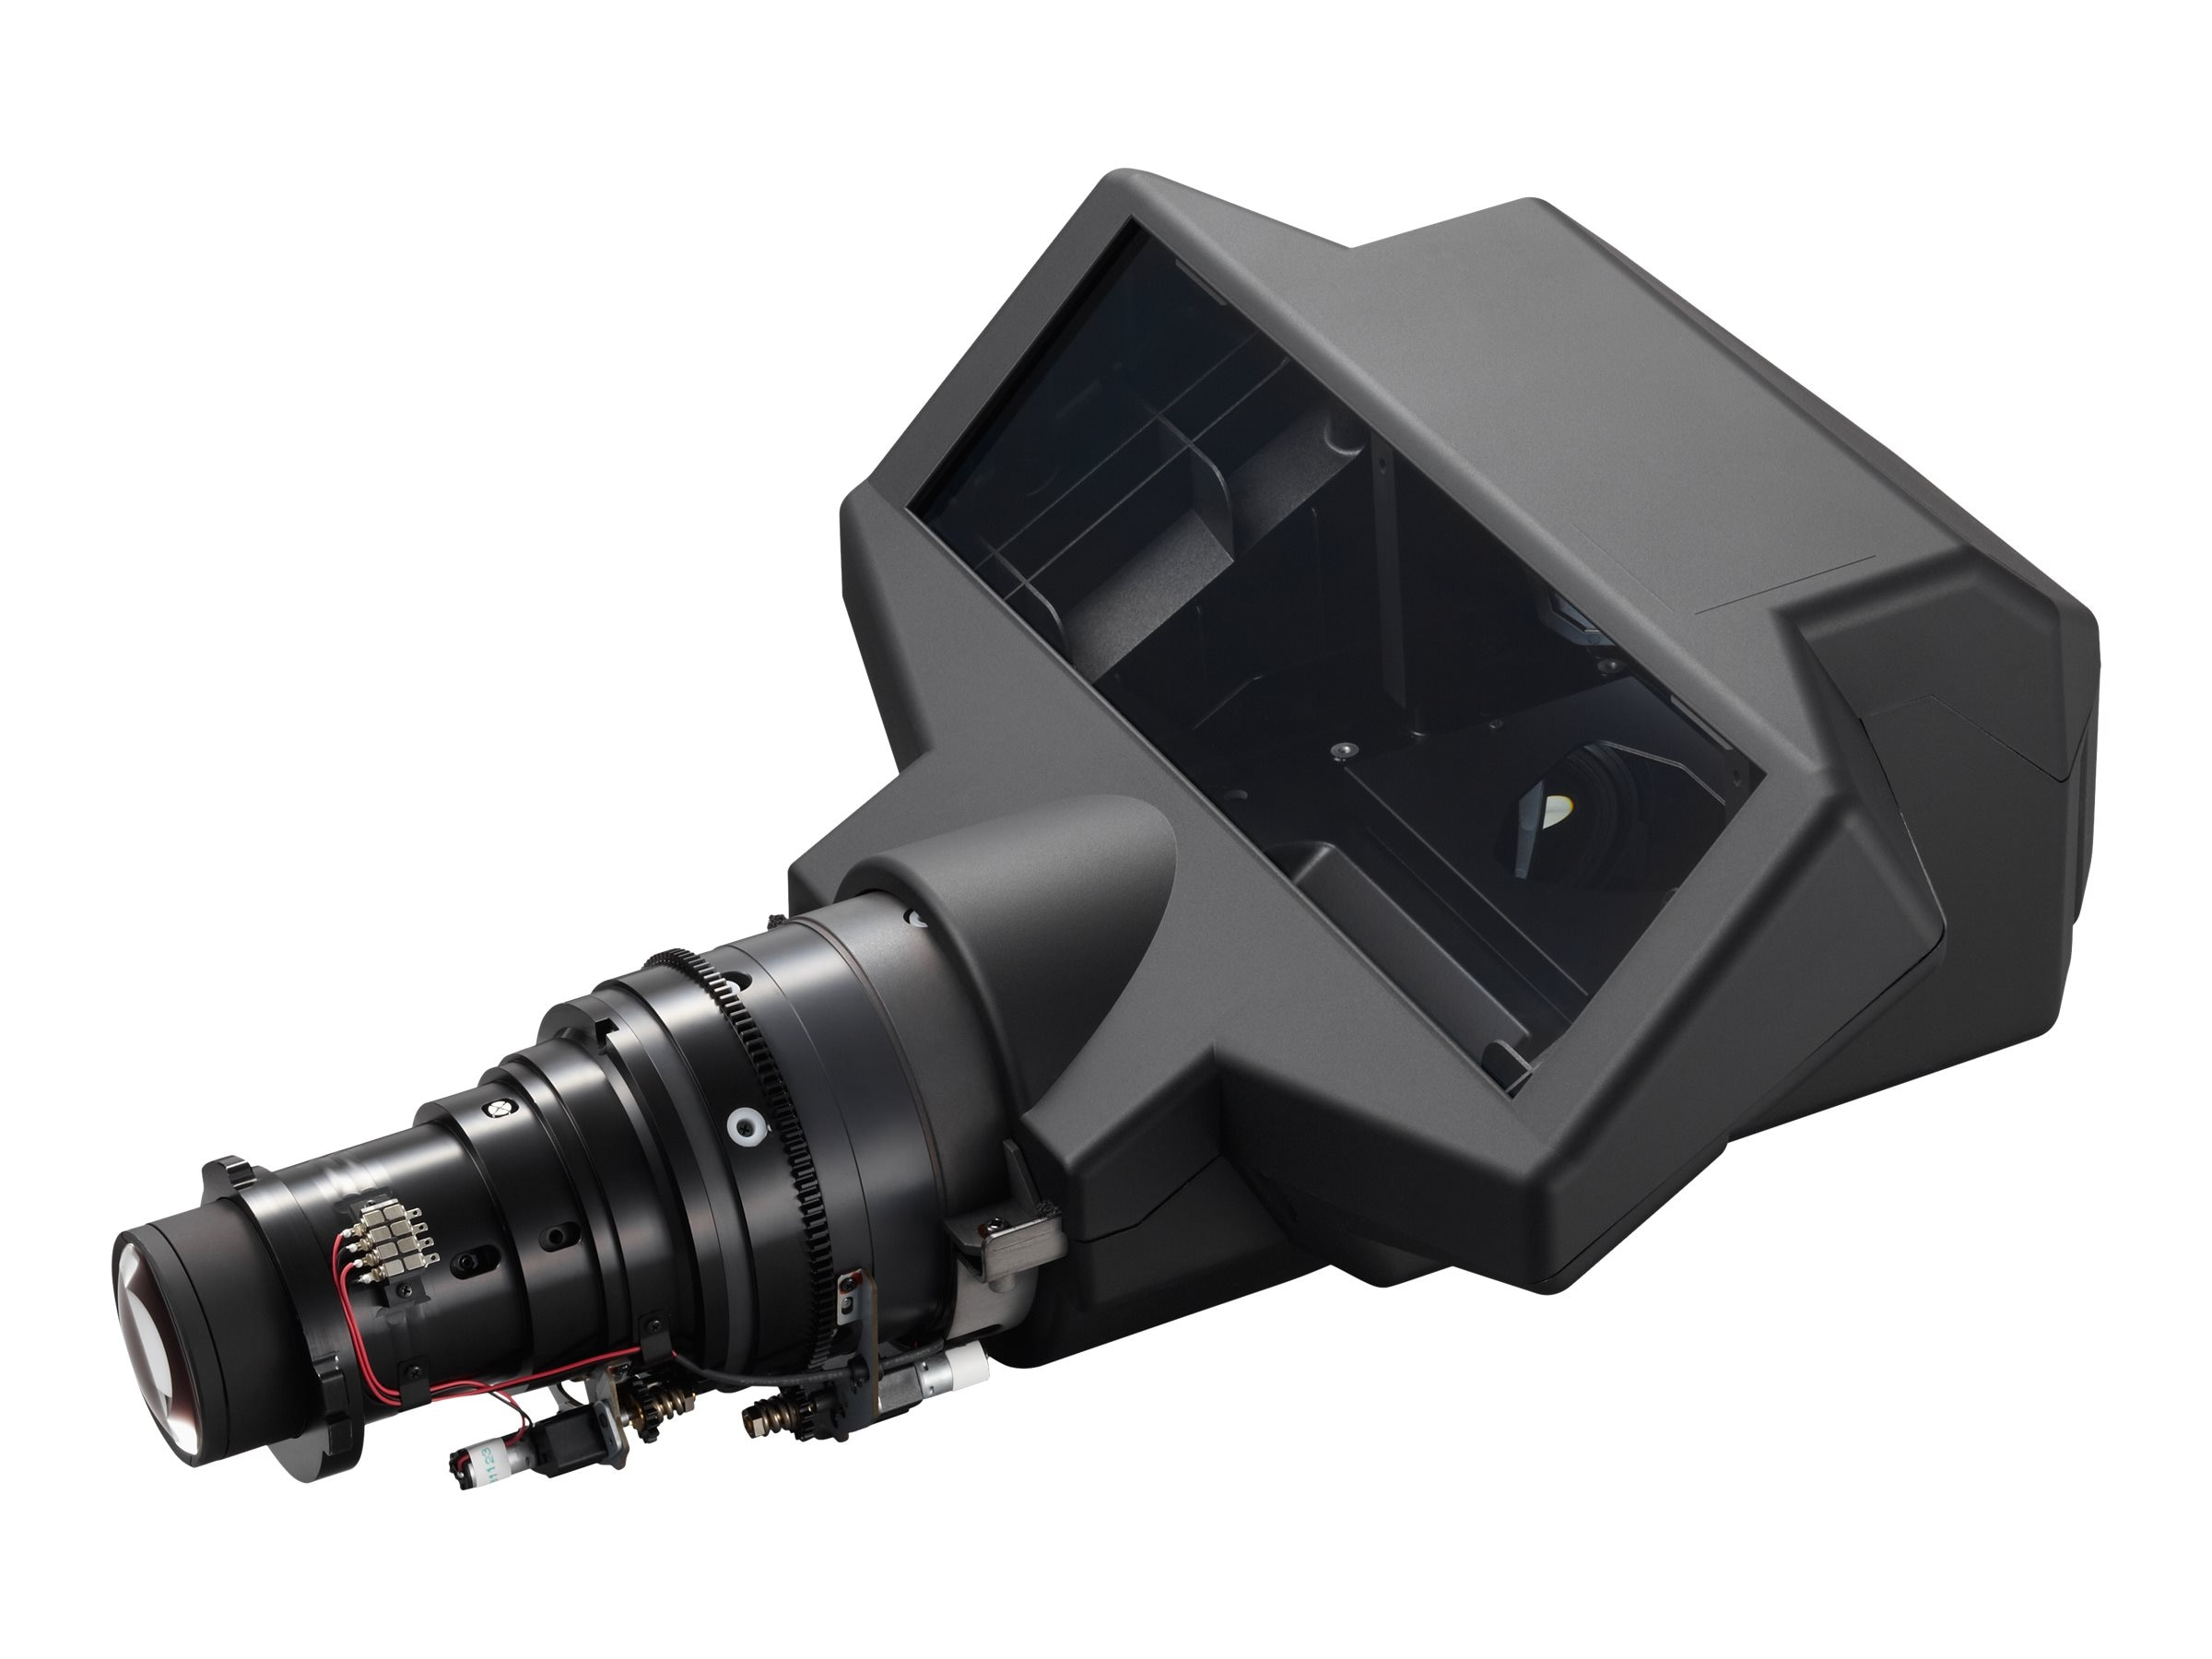 NEC 0.38:1 Ultra-Short Throw Lens for PX803UL